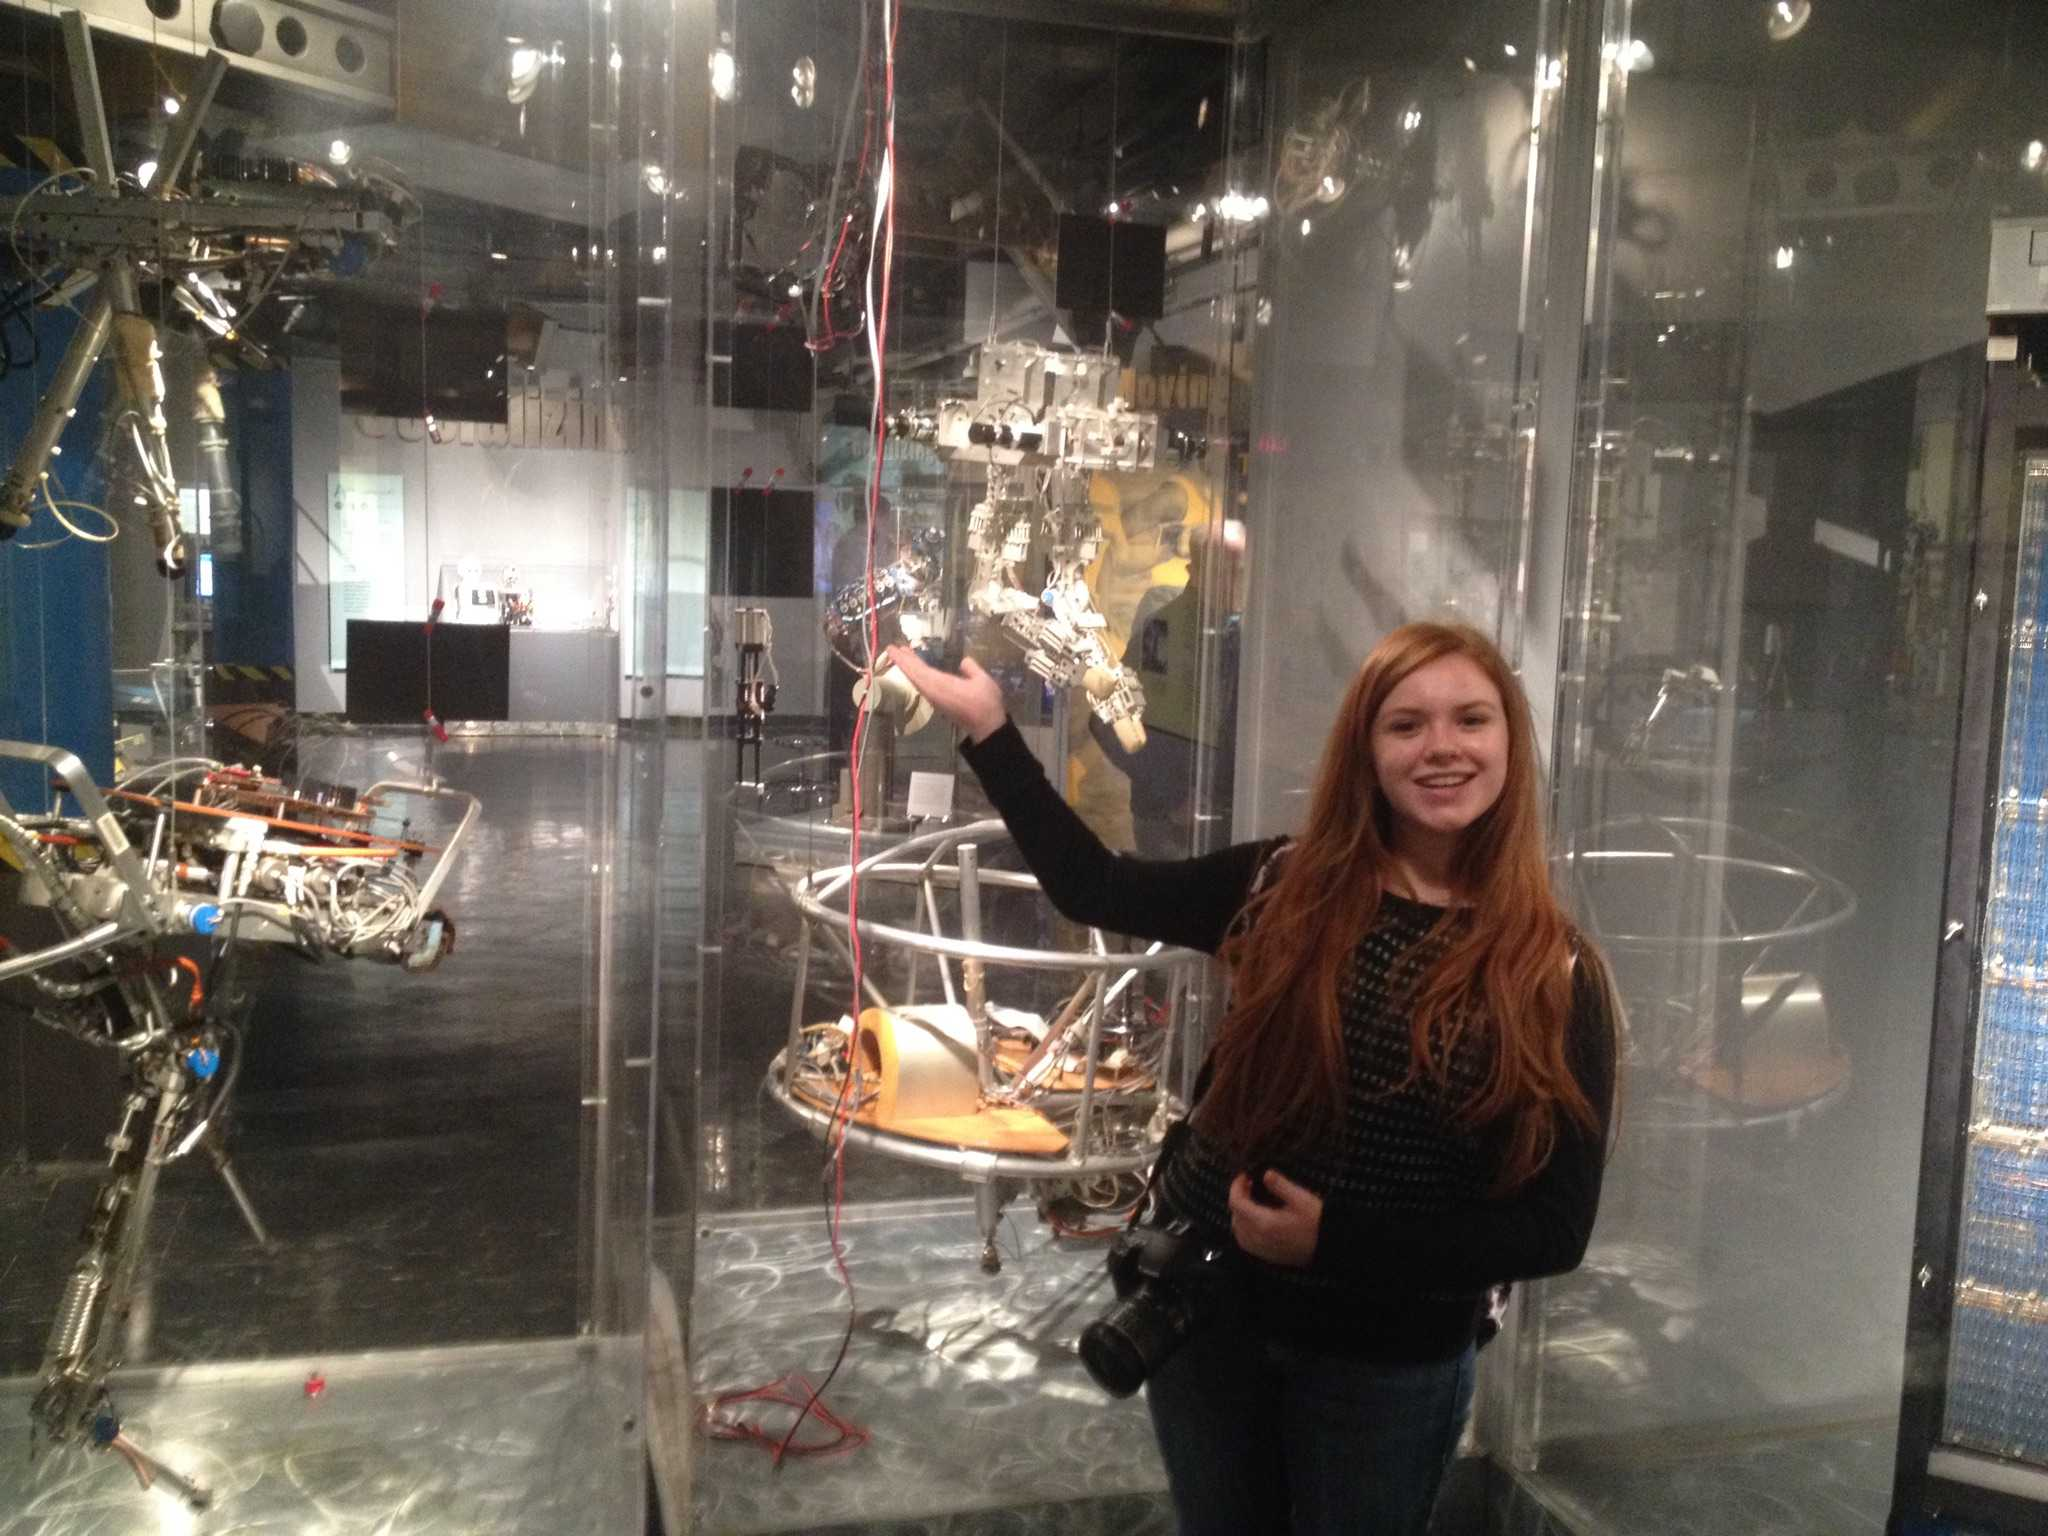 Katya Wittliff (12) smiles in front of space technology exhibit at a university nearby to Boston, where she spent a day shadowing a current student.